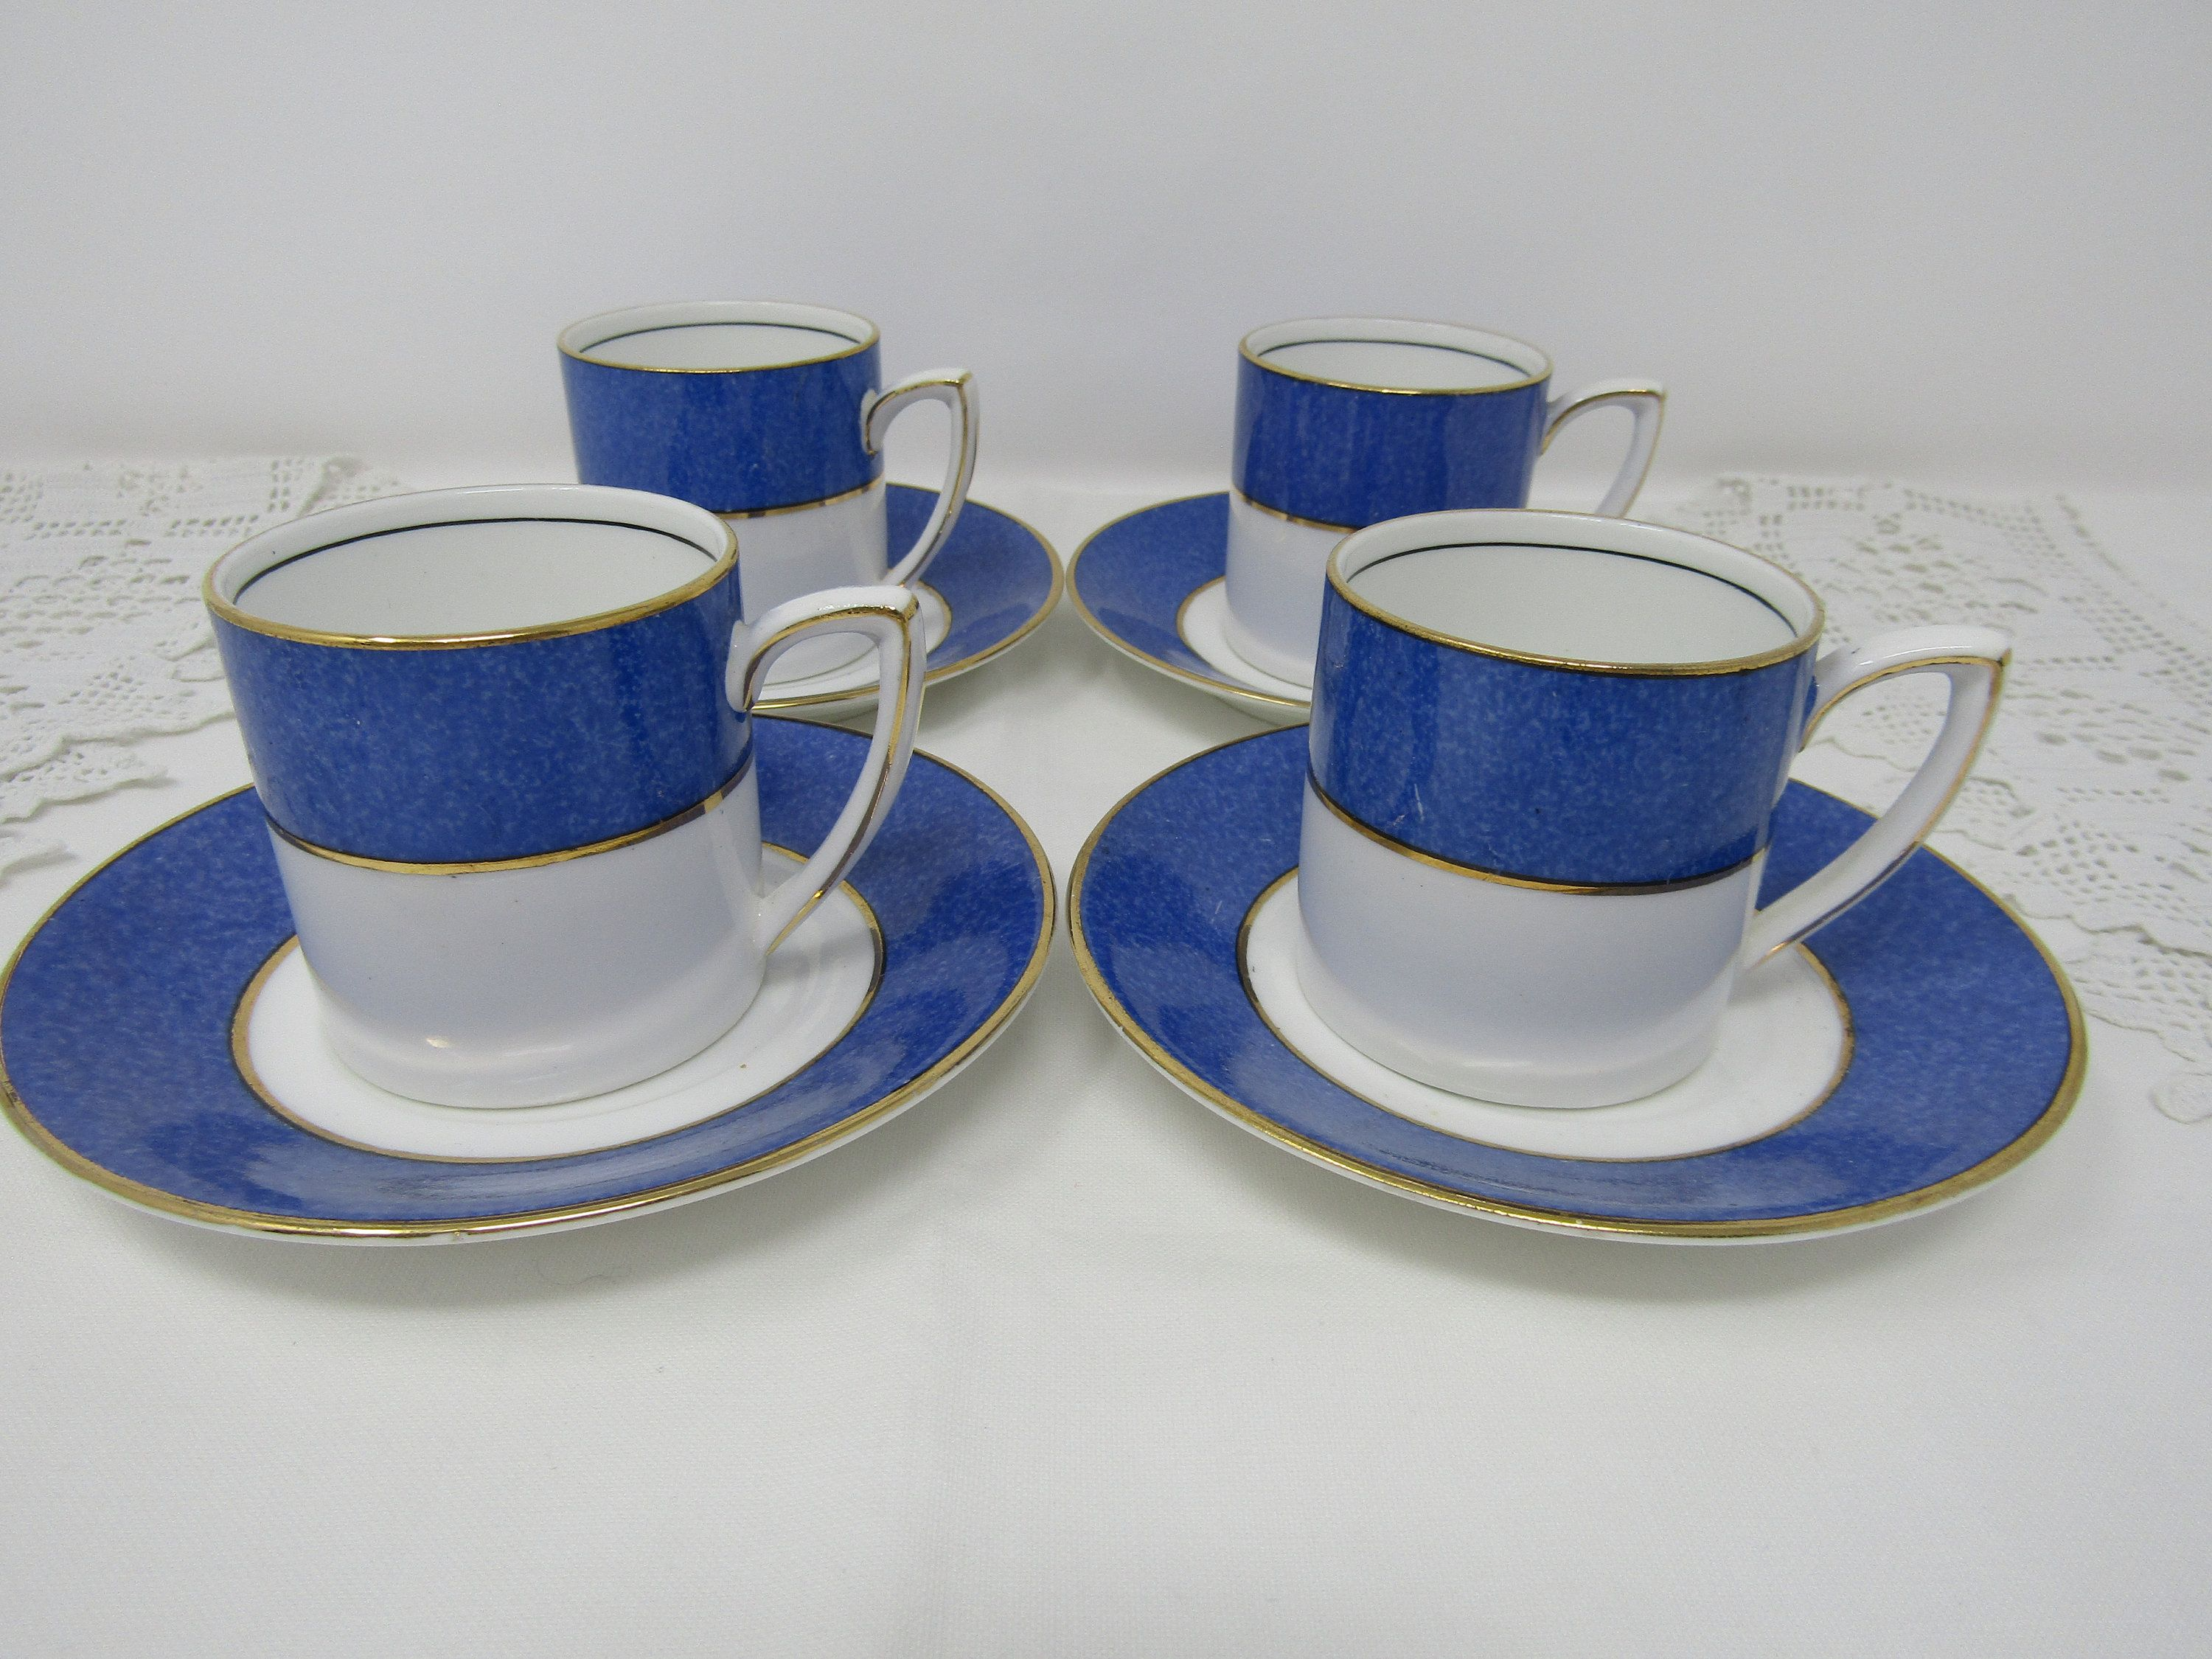 Set Of 4 Antique Demitasse Cups And Saucers From Grafton China